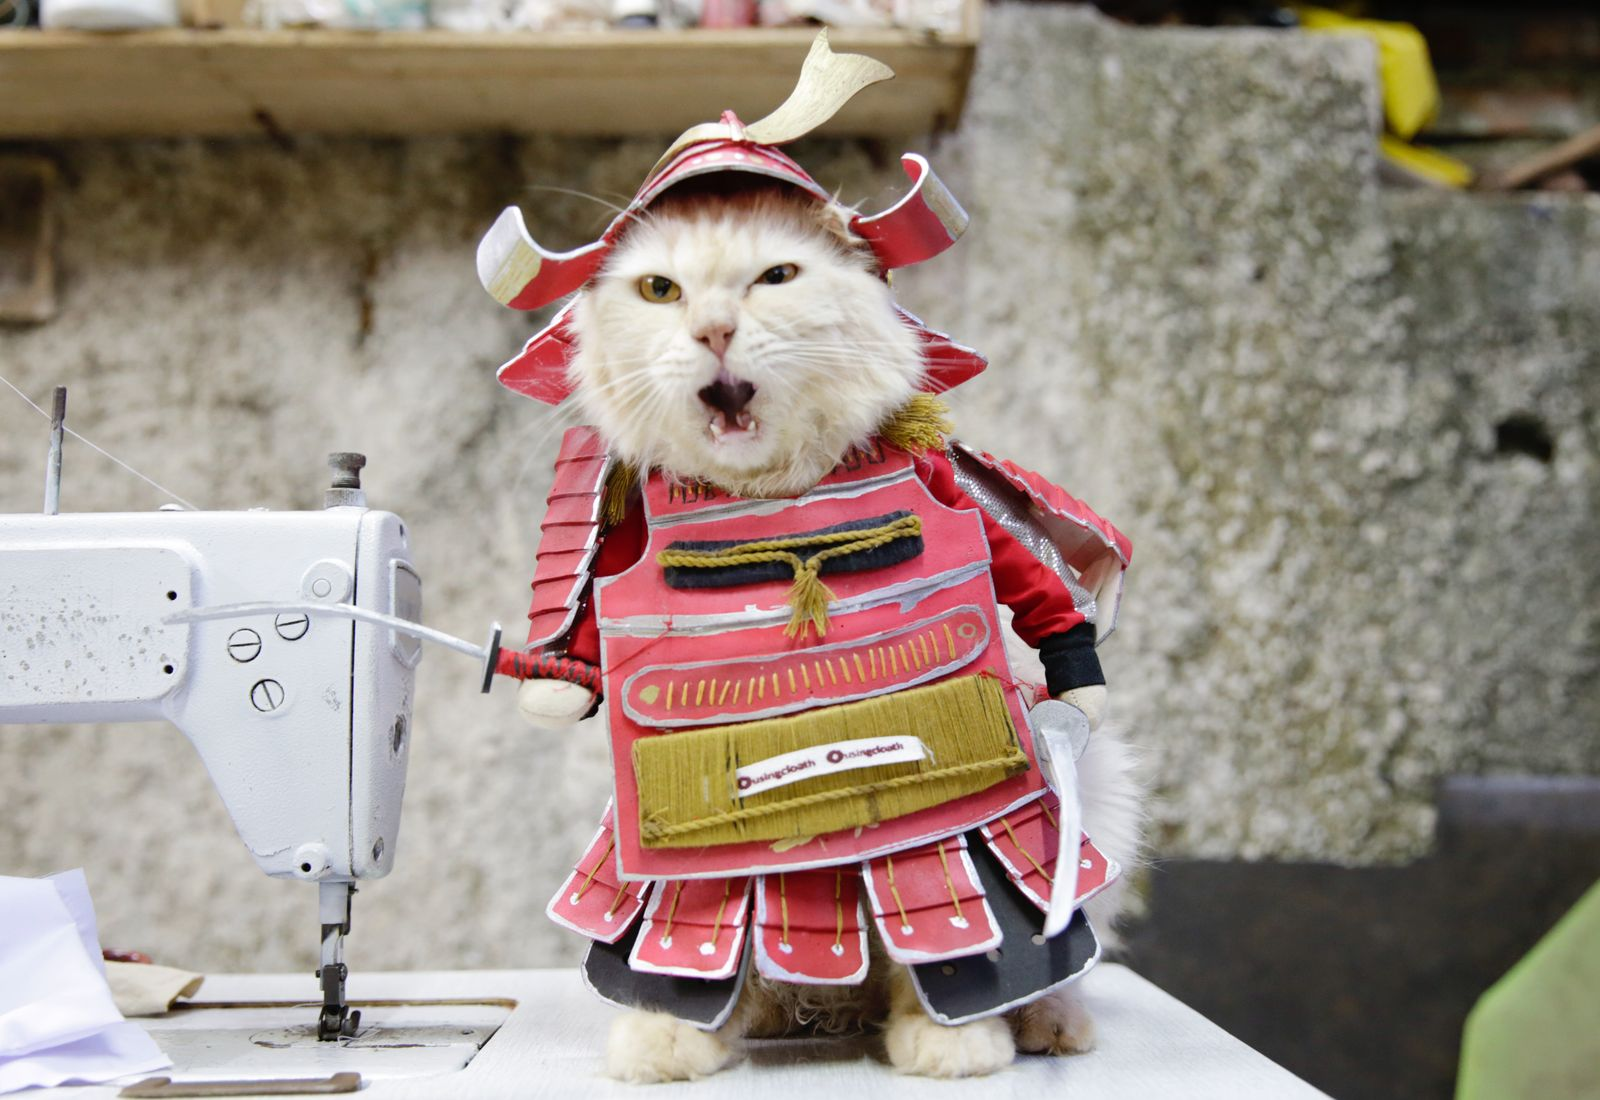 Indonesian tailor creates cosplay outfits for cats, Bogor, Indonesia - 02 Dec 2020